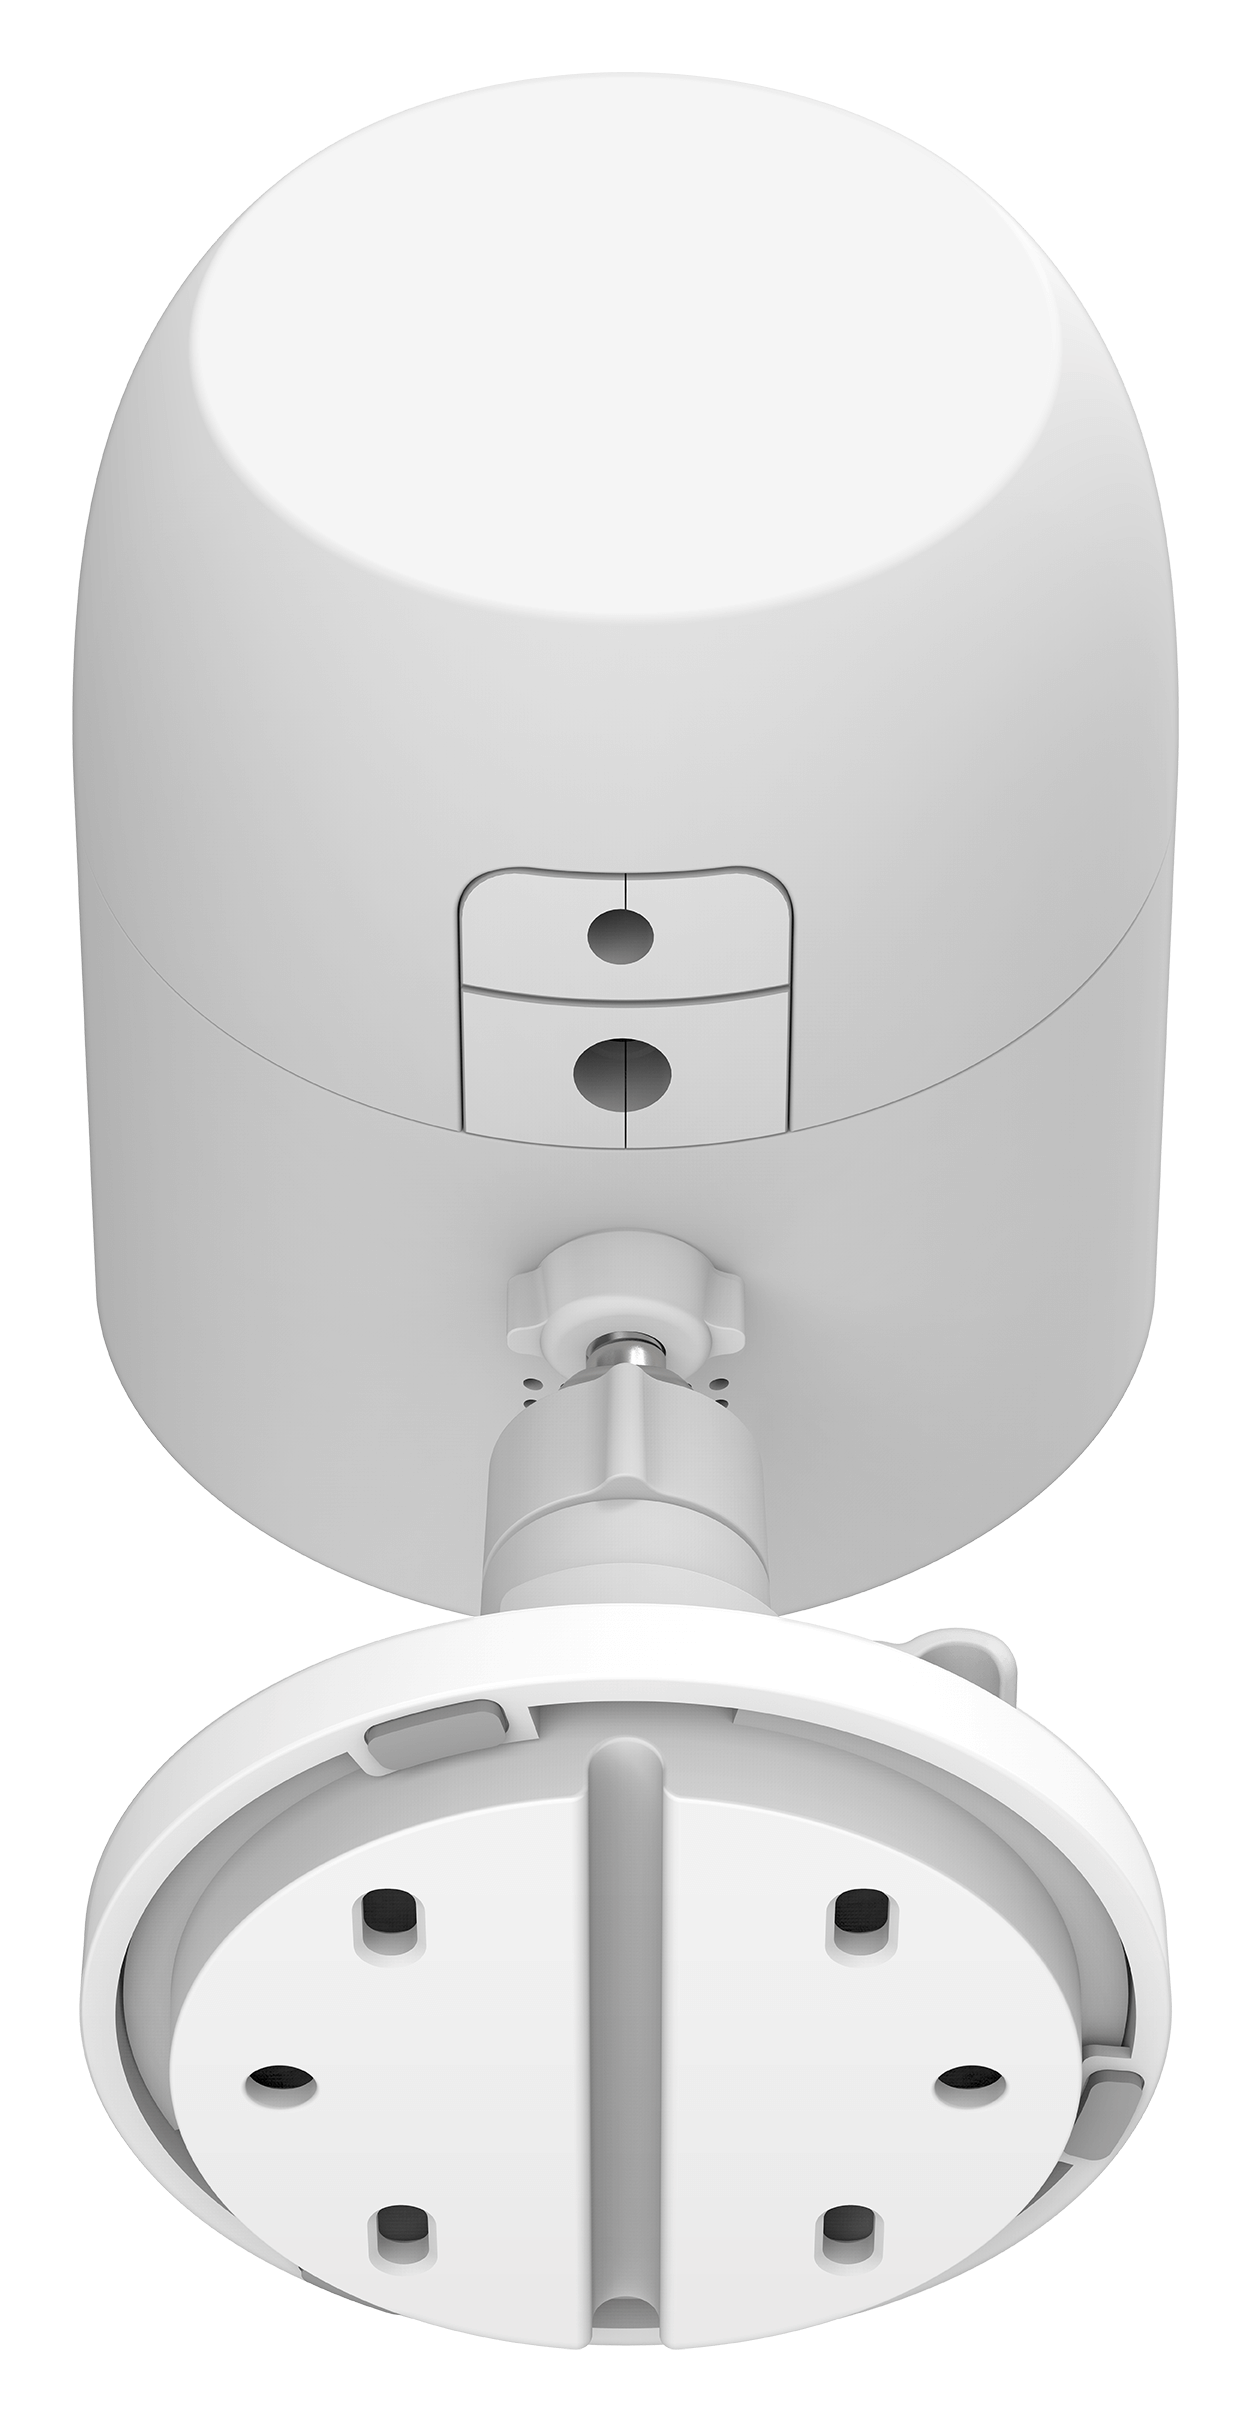 DCS-8302LH Full HD Outdoor Wi-Fi Camera - bottom view of the back.